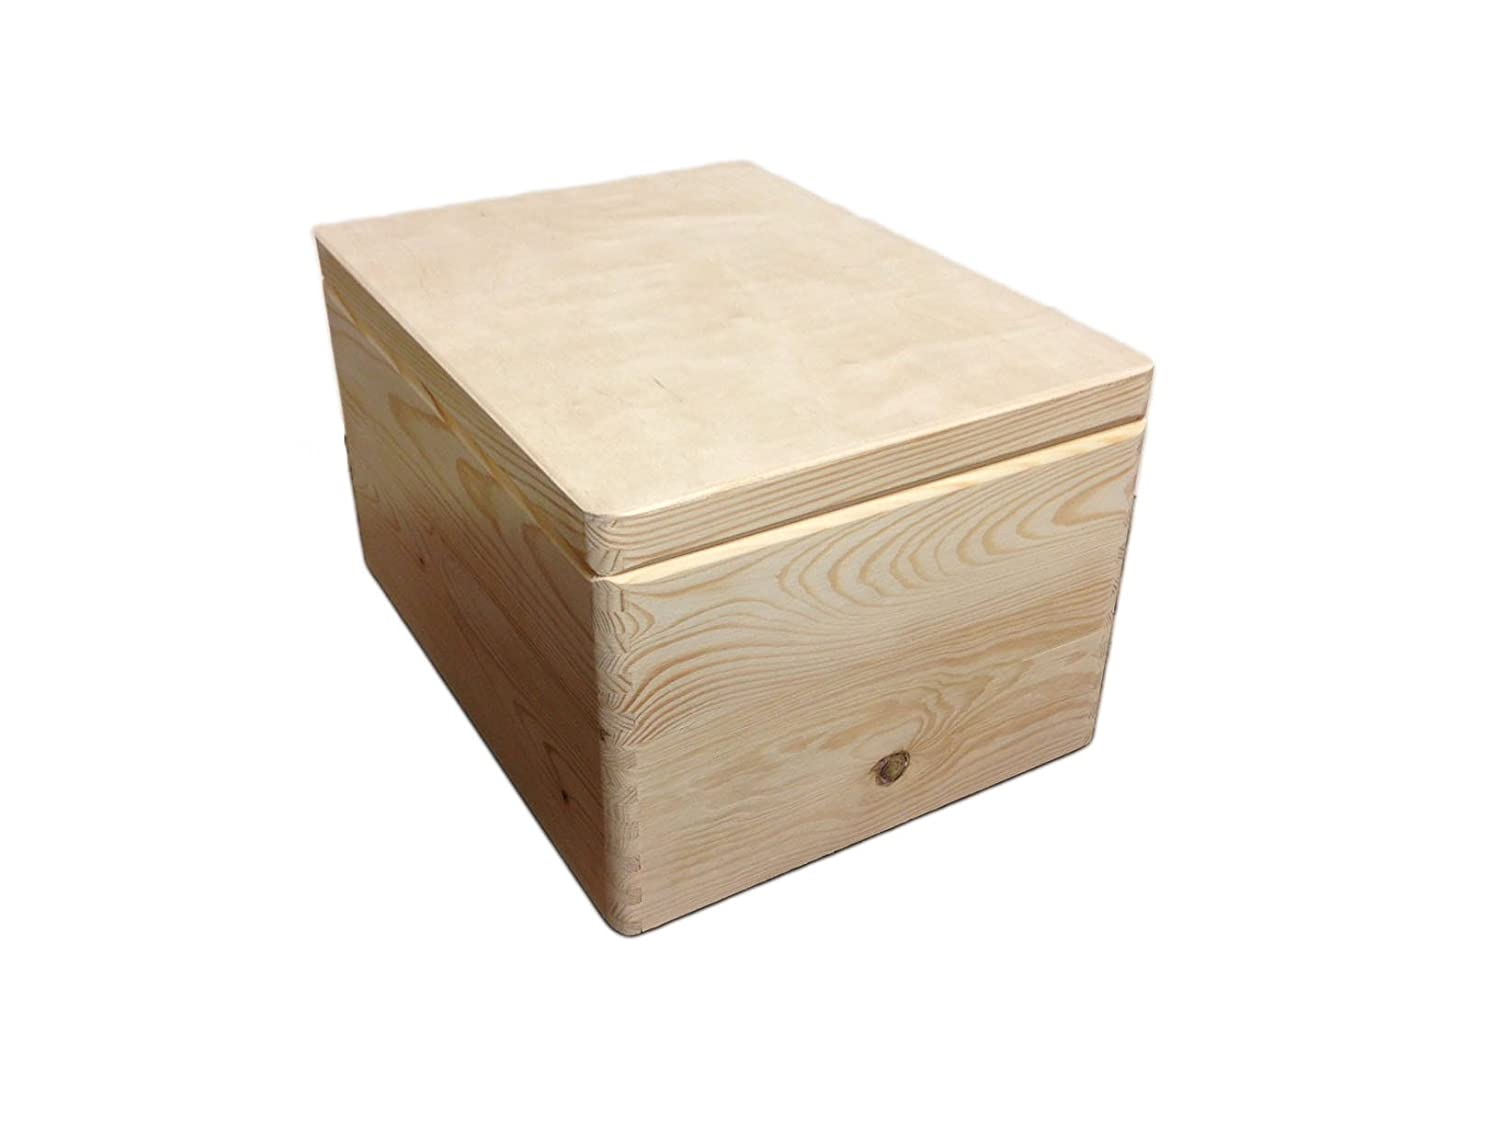 2 x PLAIN WOODEN STORAGE CHESTS KIDS BEDROOM TOY BOX BOX CRATE 39.5x 30x 24cm HomeDecoArt